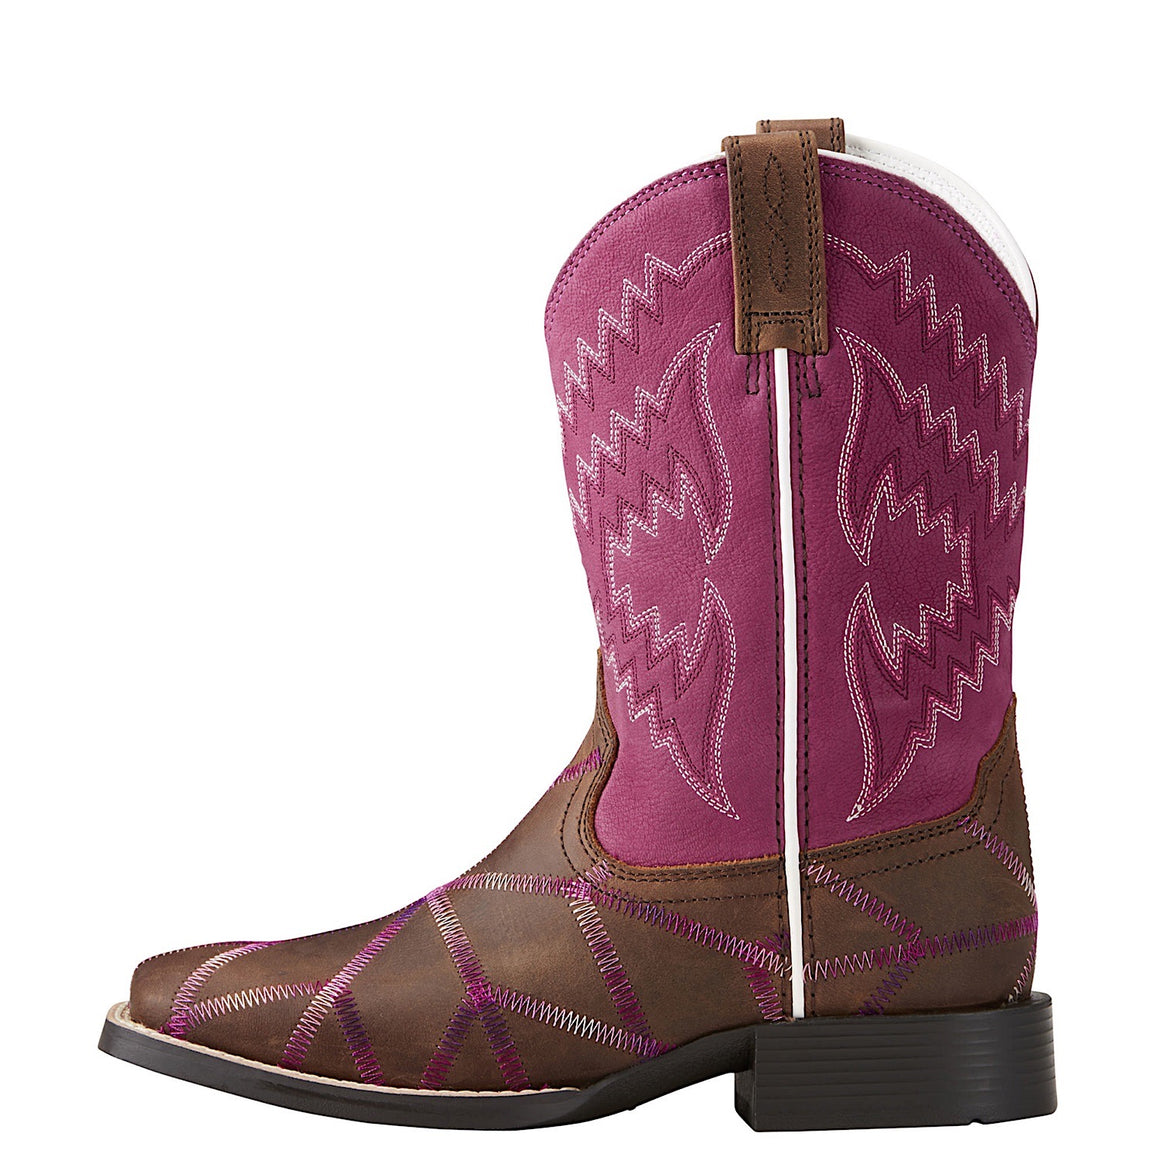 Ariat Girls Twisted Tycoon Western Boot Distressed Brown/ Plum Pink